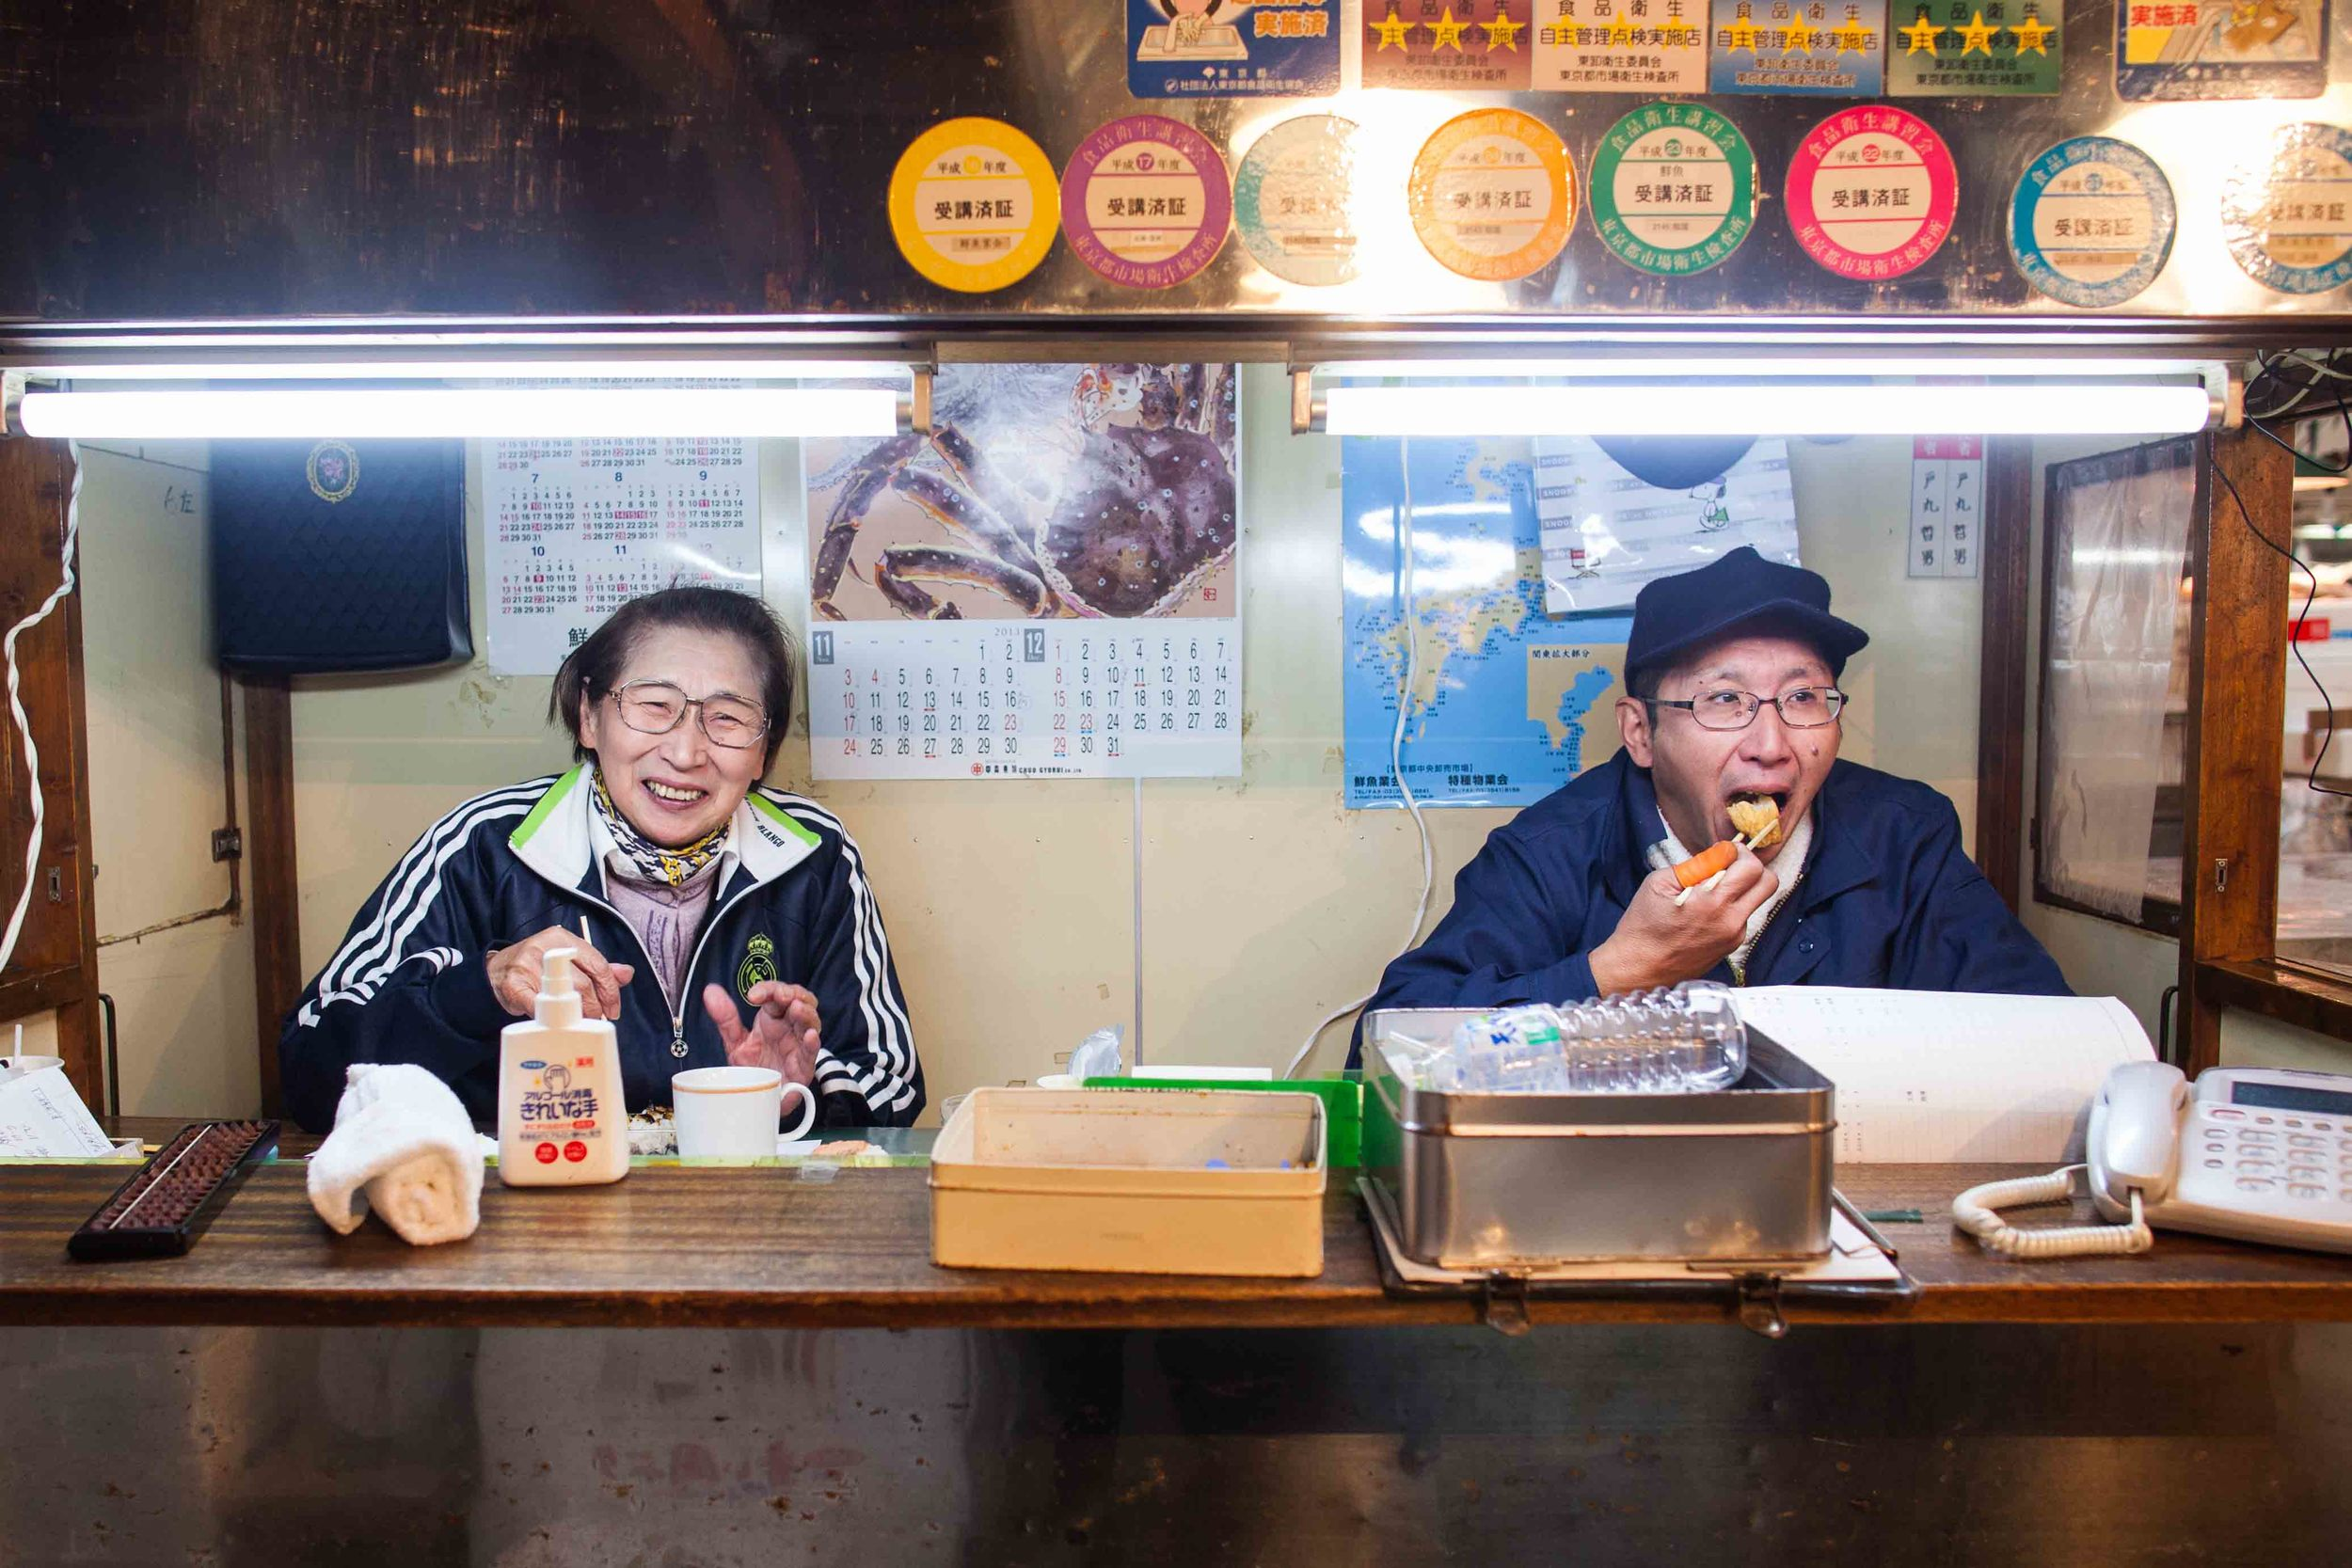 Chiyoko Tomaru enjoys a meal with a friend at the Tsukiji Fish Market.